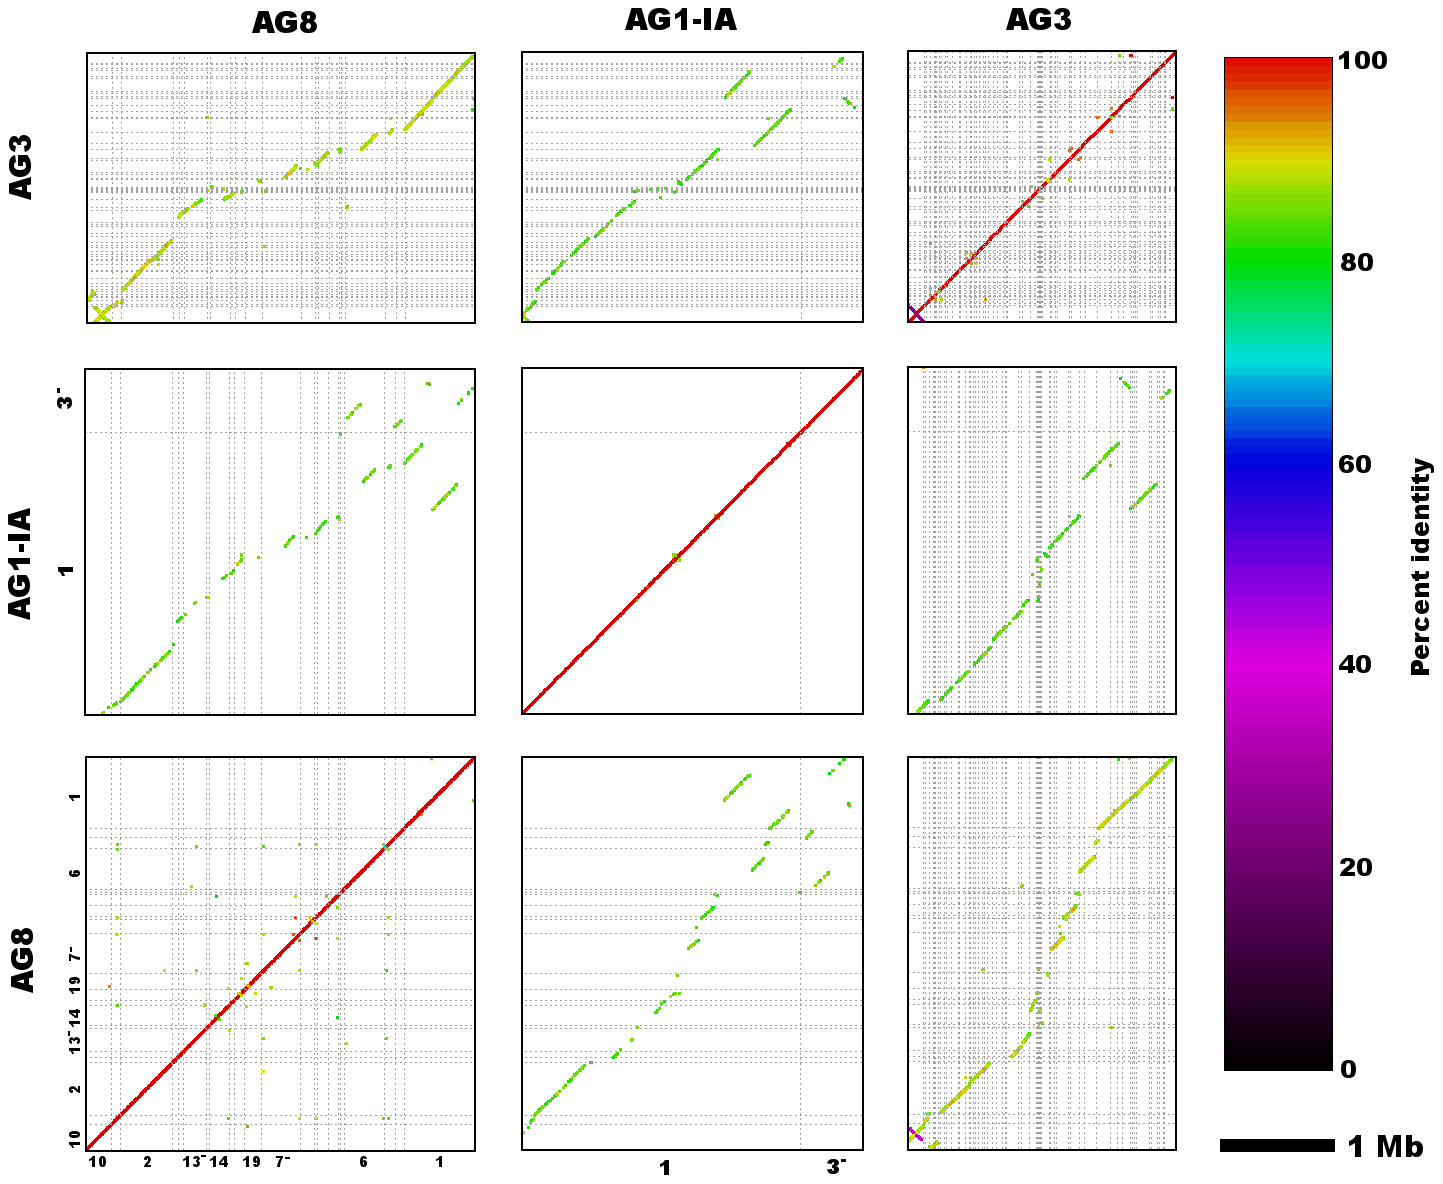 Genome assembly sequence comparisons between <i>R. solani</i> AG8 and isolates from alternate anastomosis groups.